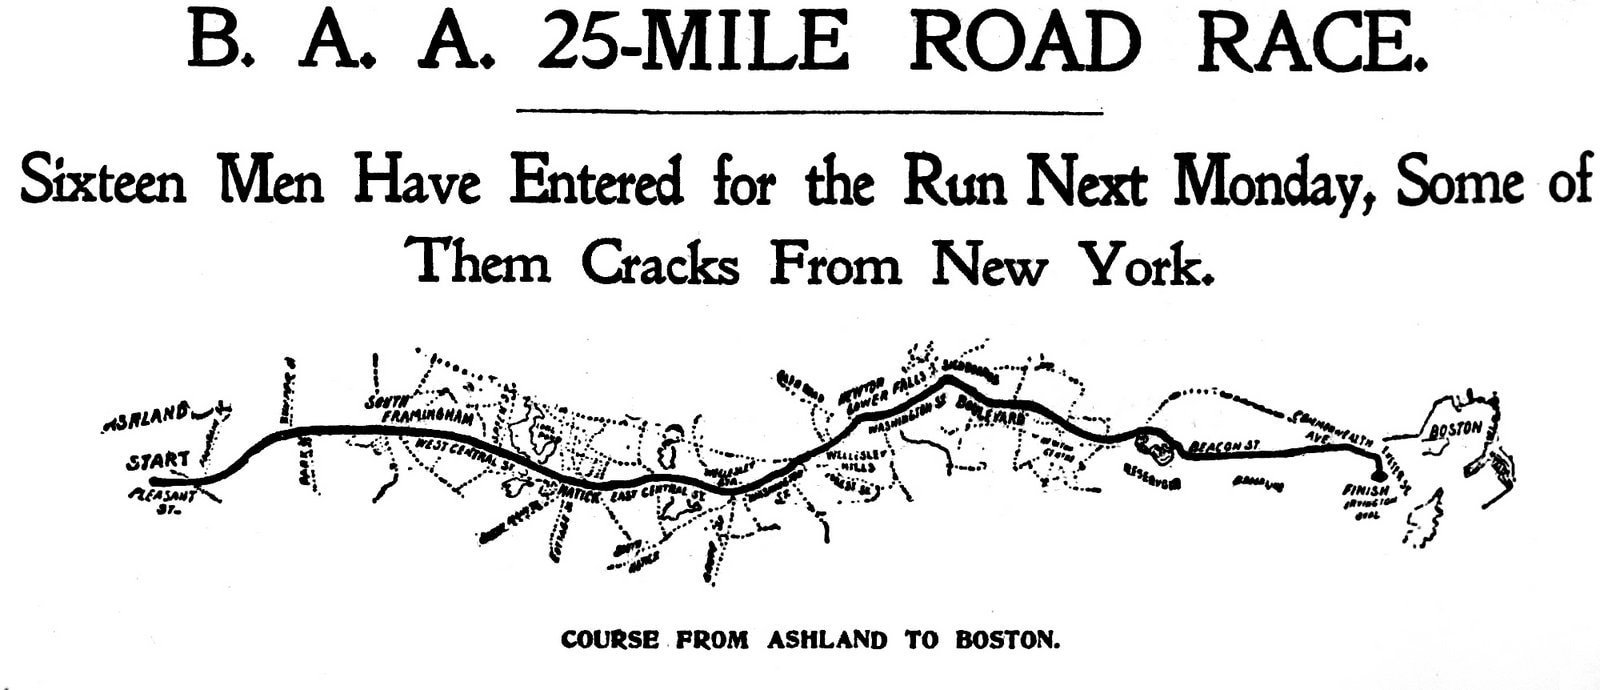 First Boston Marathon race course map - Published in The Boston Globe - April 16, 1897